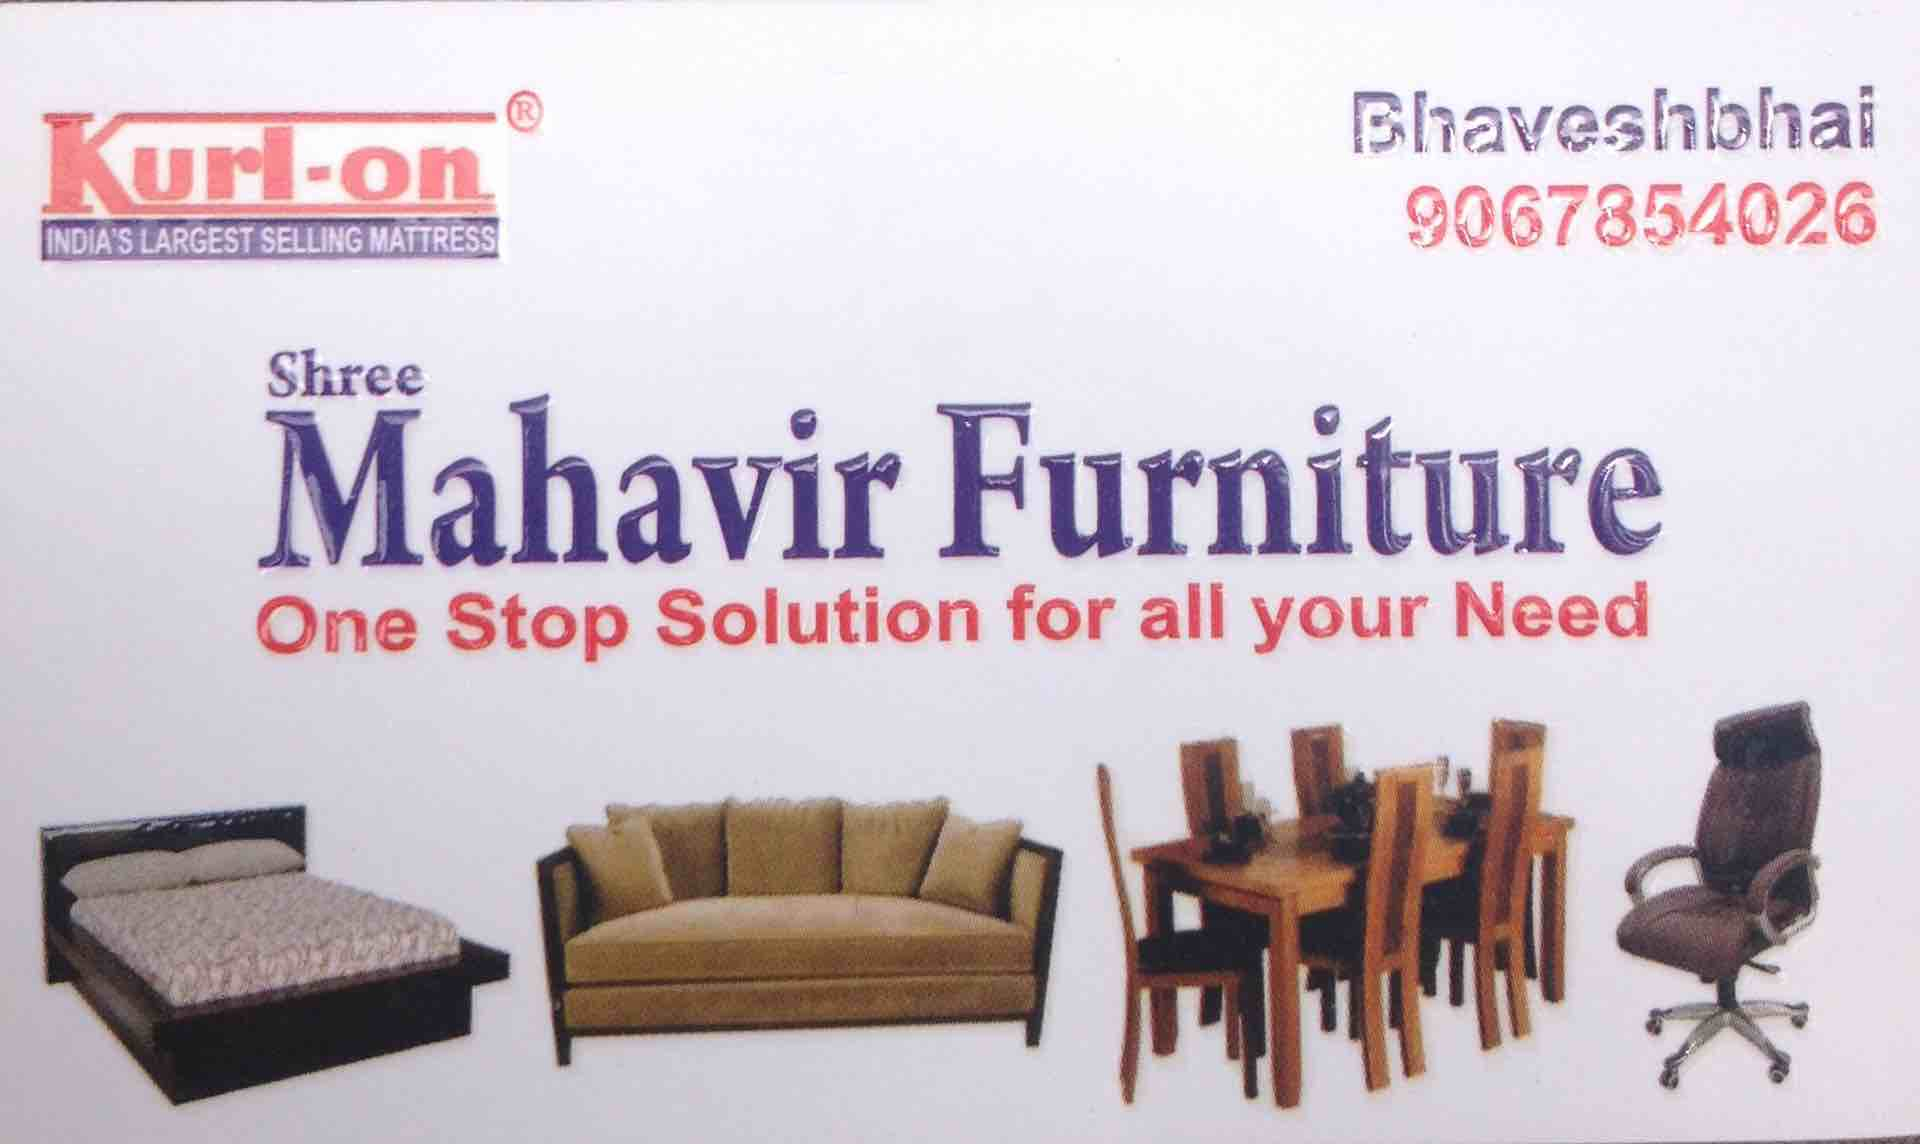 Shree Mahavir Furniture